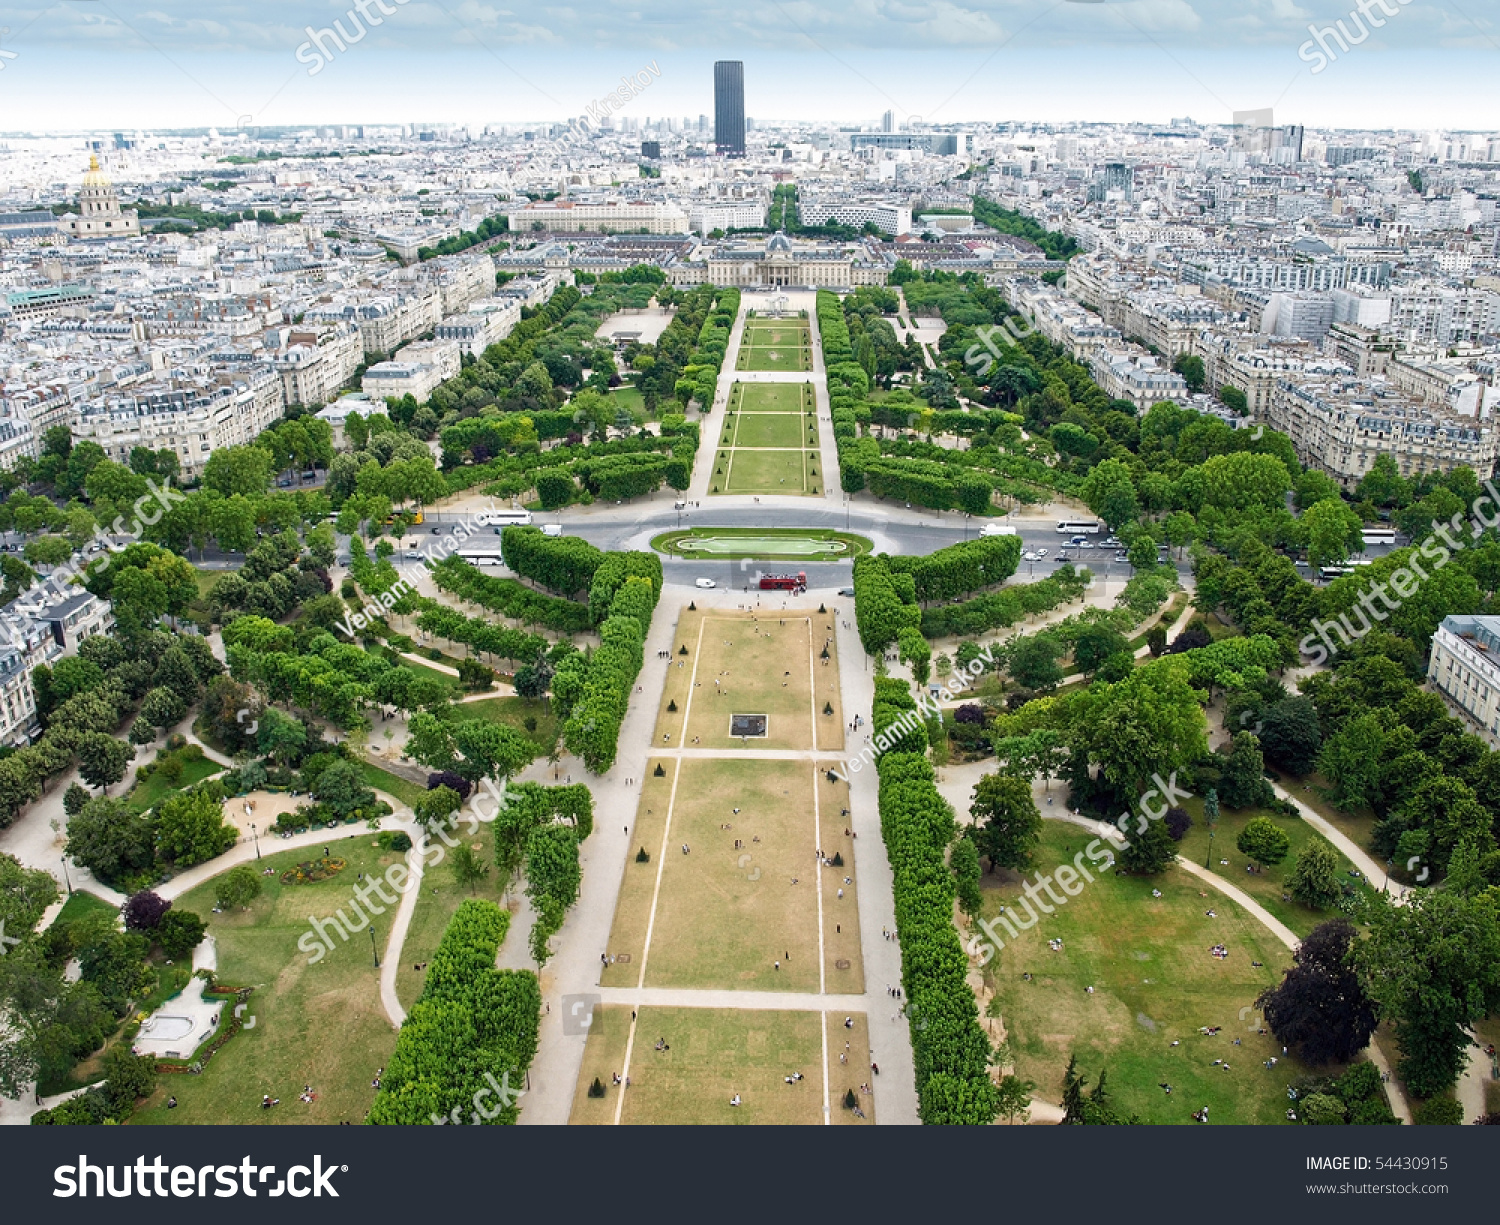 Aerial View Of Paris From Eiffel Tower Stock Photo ...